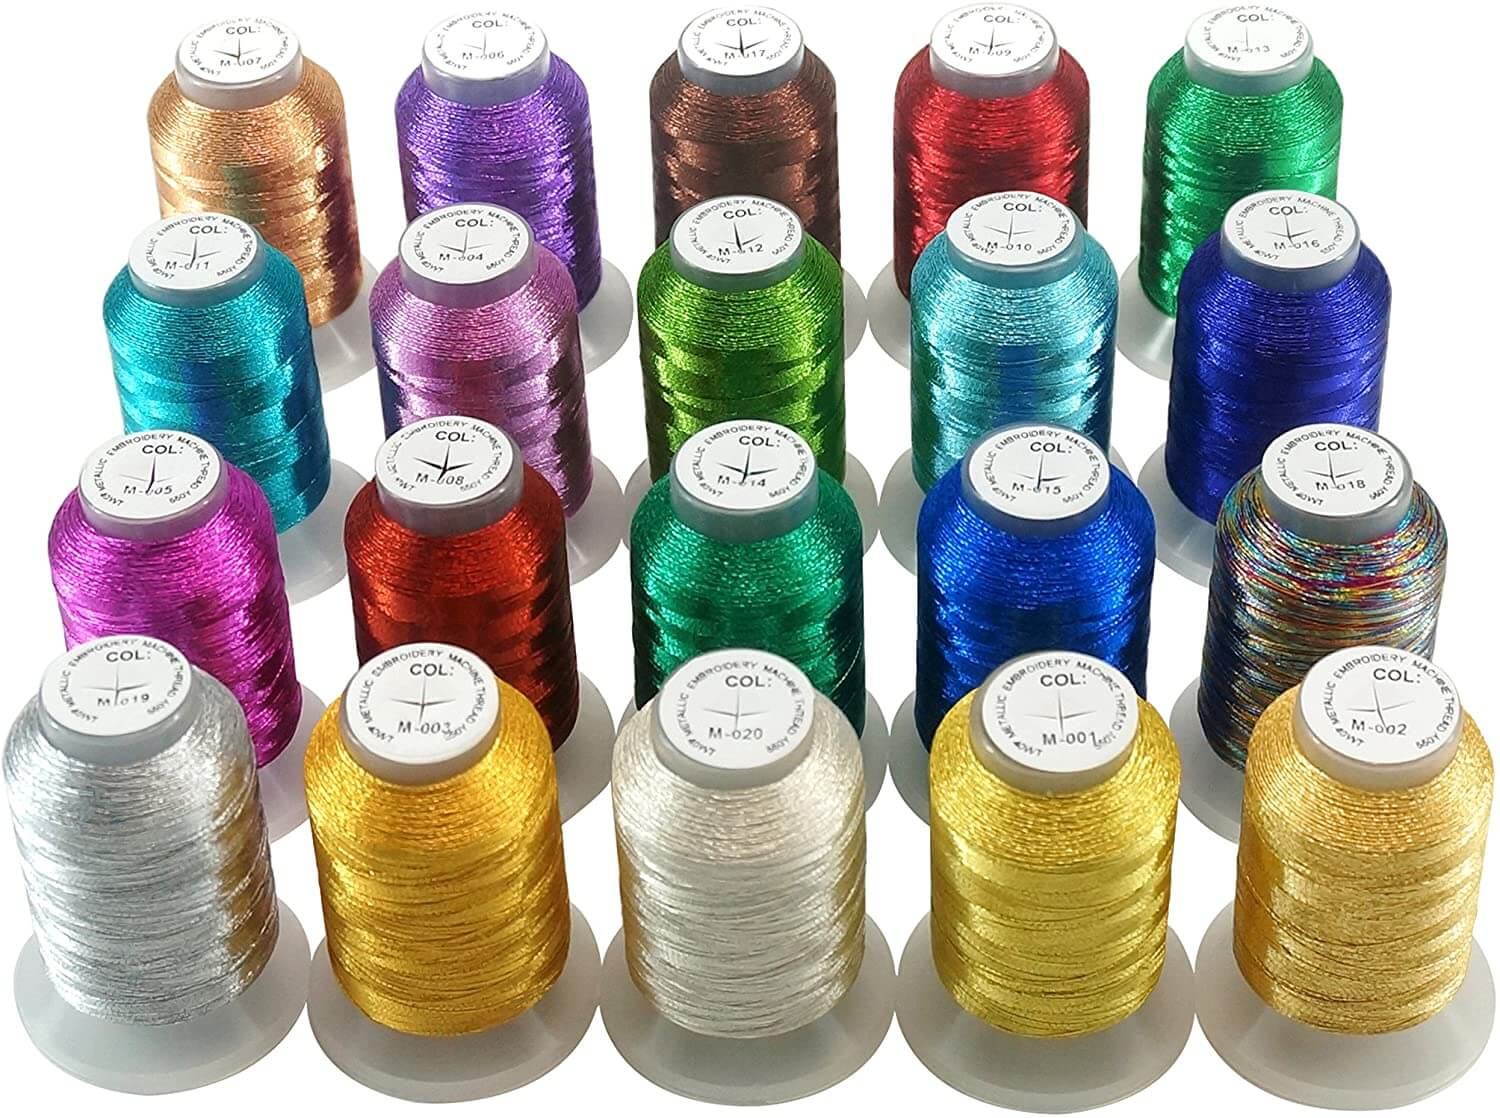 New brothread 20 Assorted Colours Metallic Machine Embroidery Thread